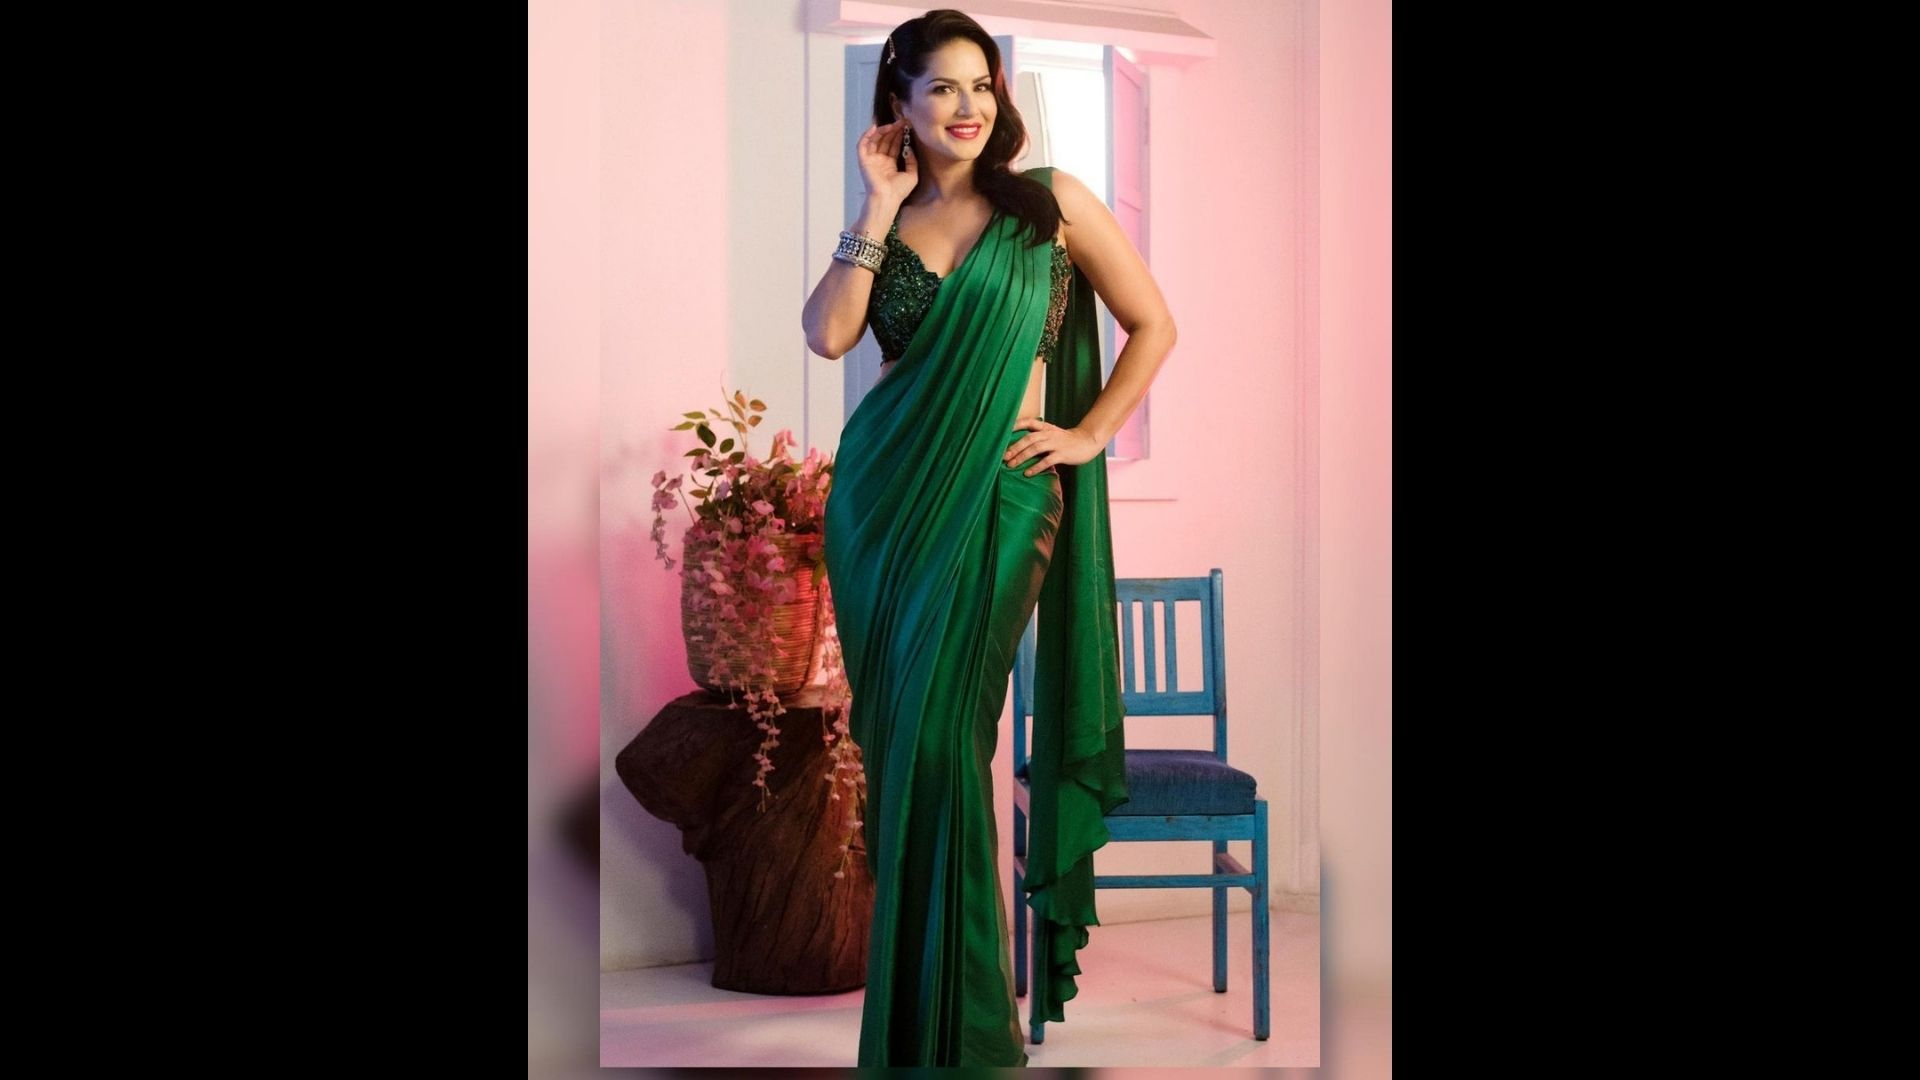 Sunny Leone Grabs Eyeballs In Sultry Green Silk Saree As She Drops New Pics On IG